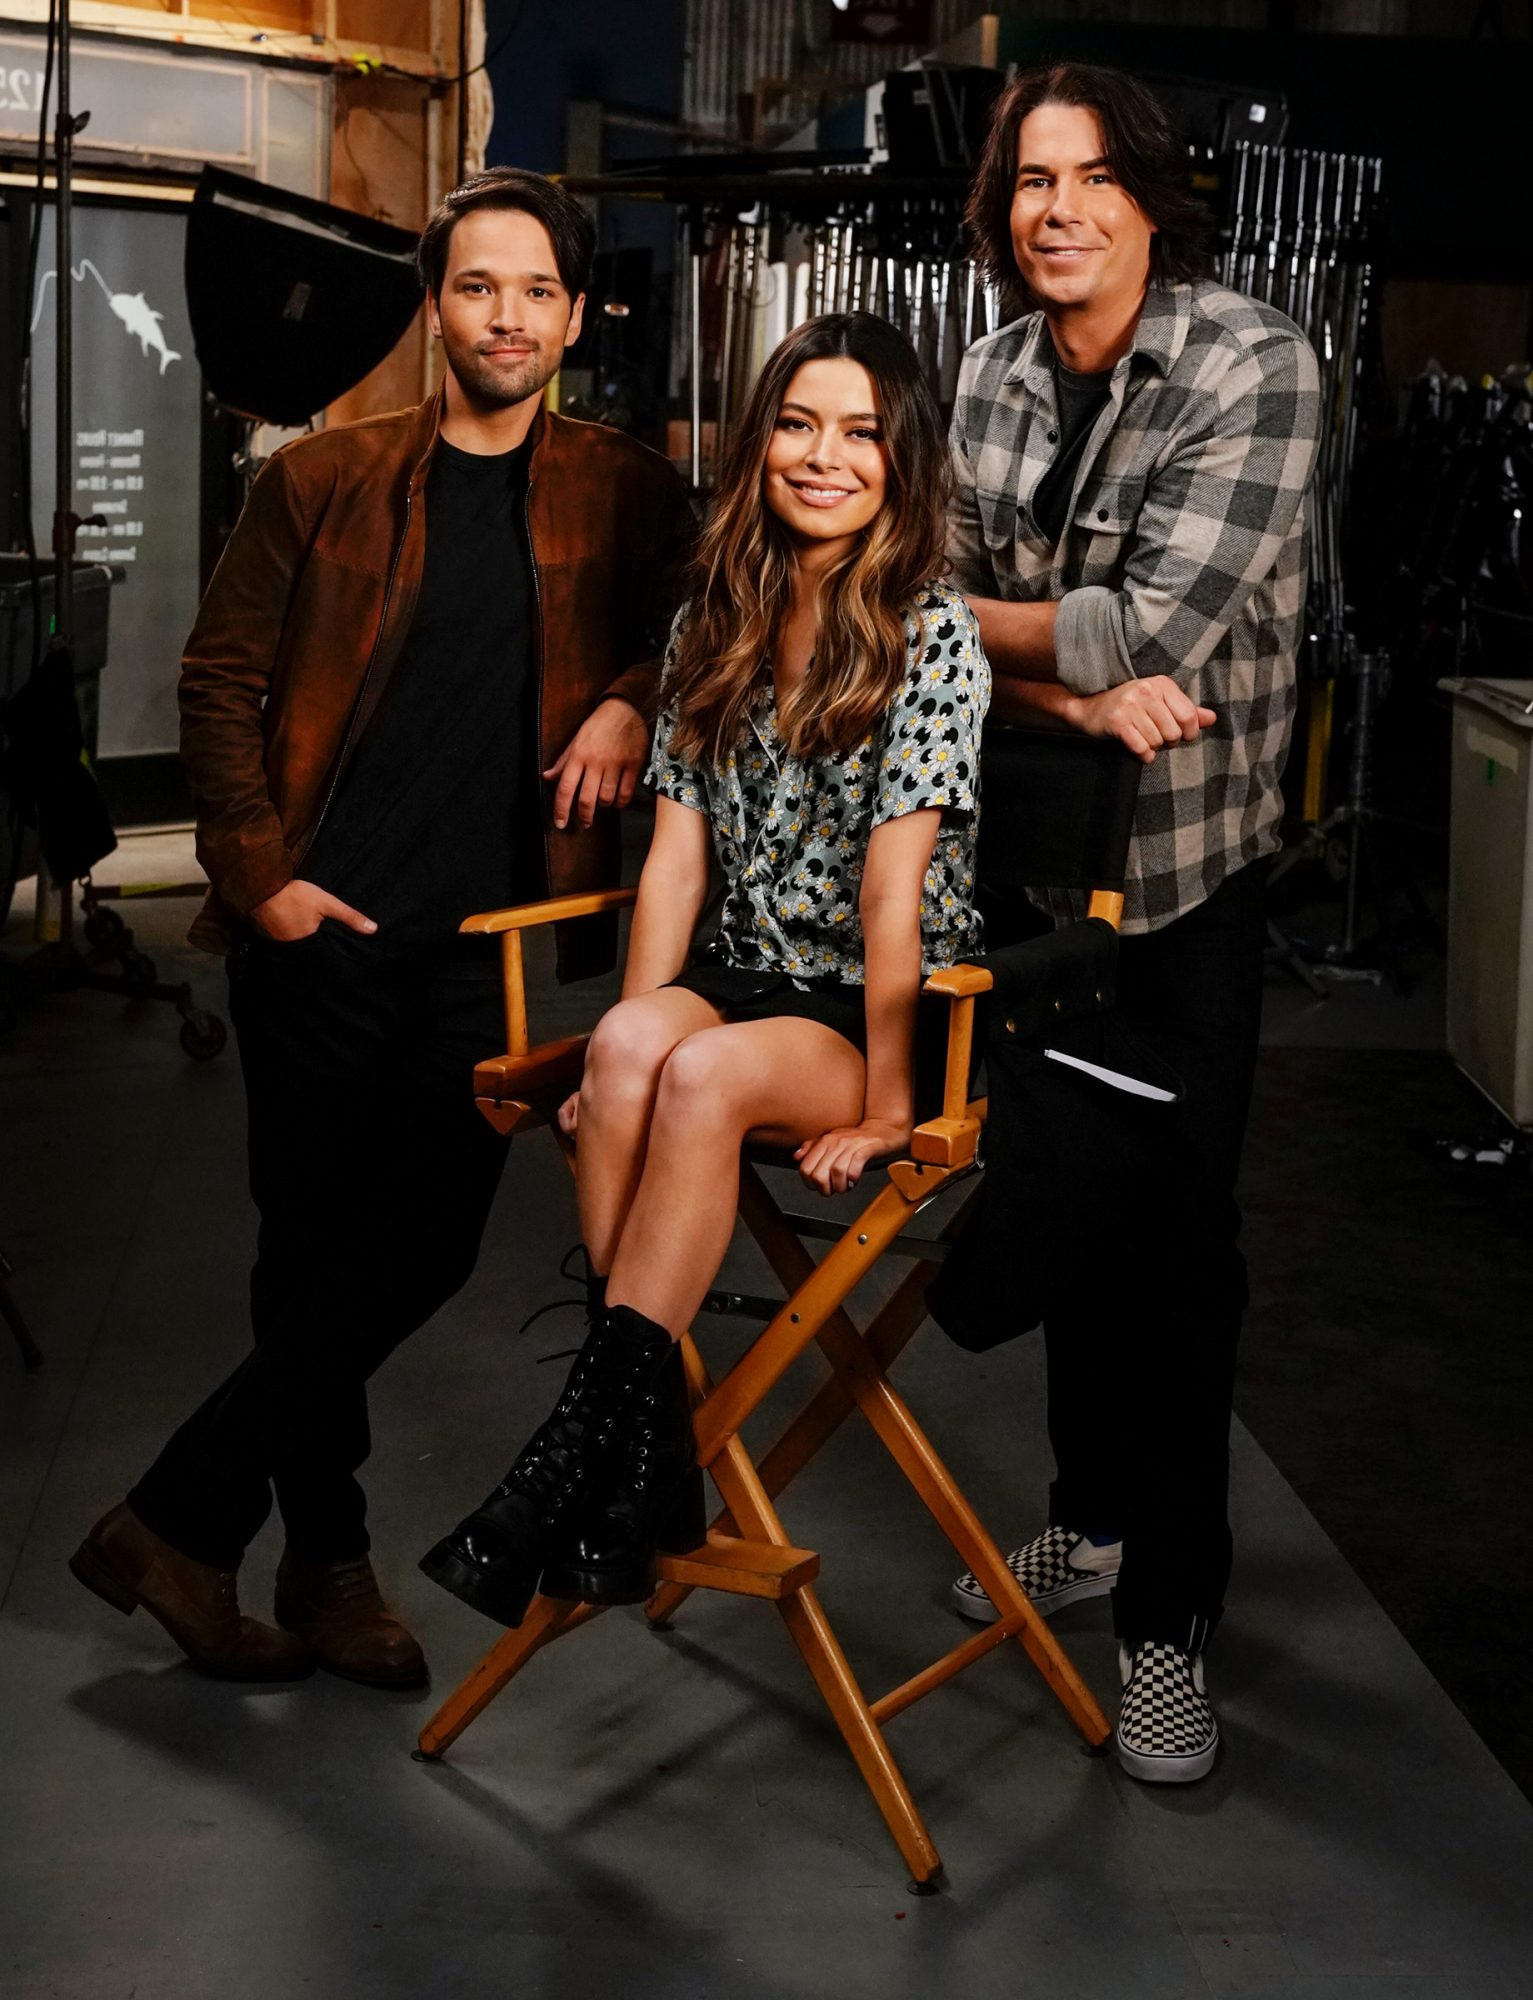 athan Kress, Miranda Cosgrove and Jerry Trainor of the Paramount+ series iCARLY.